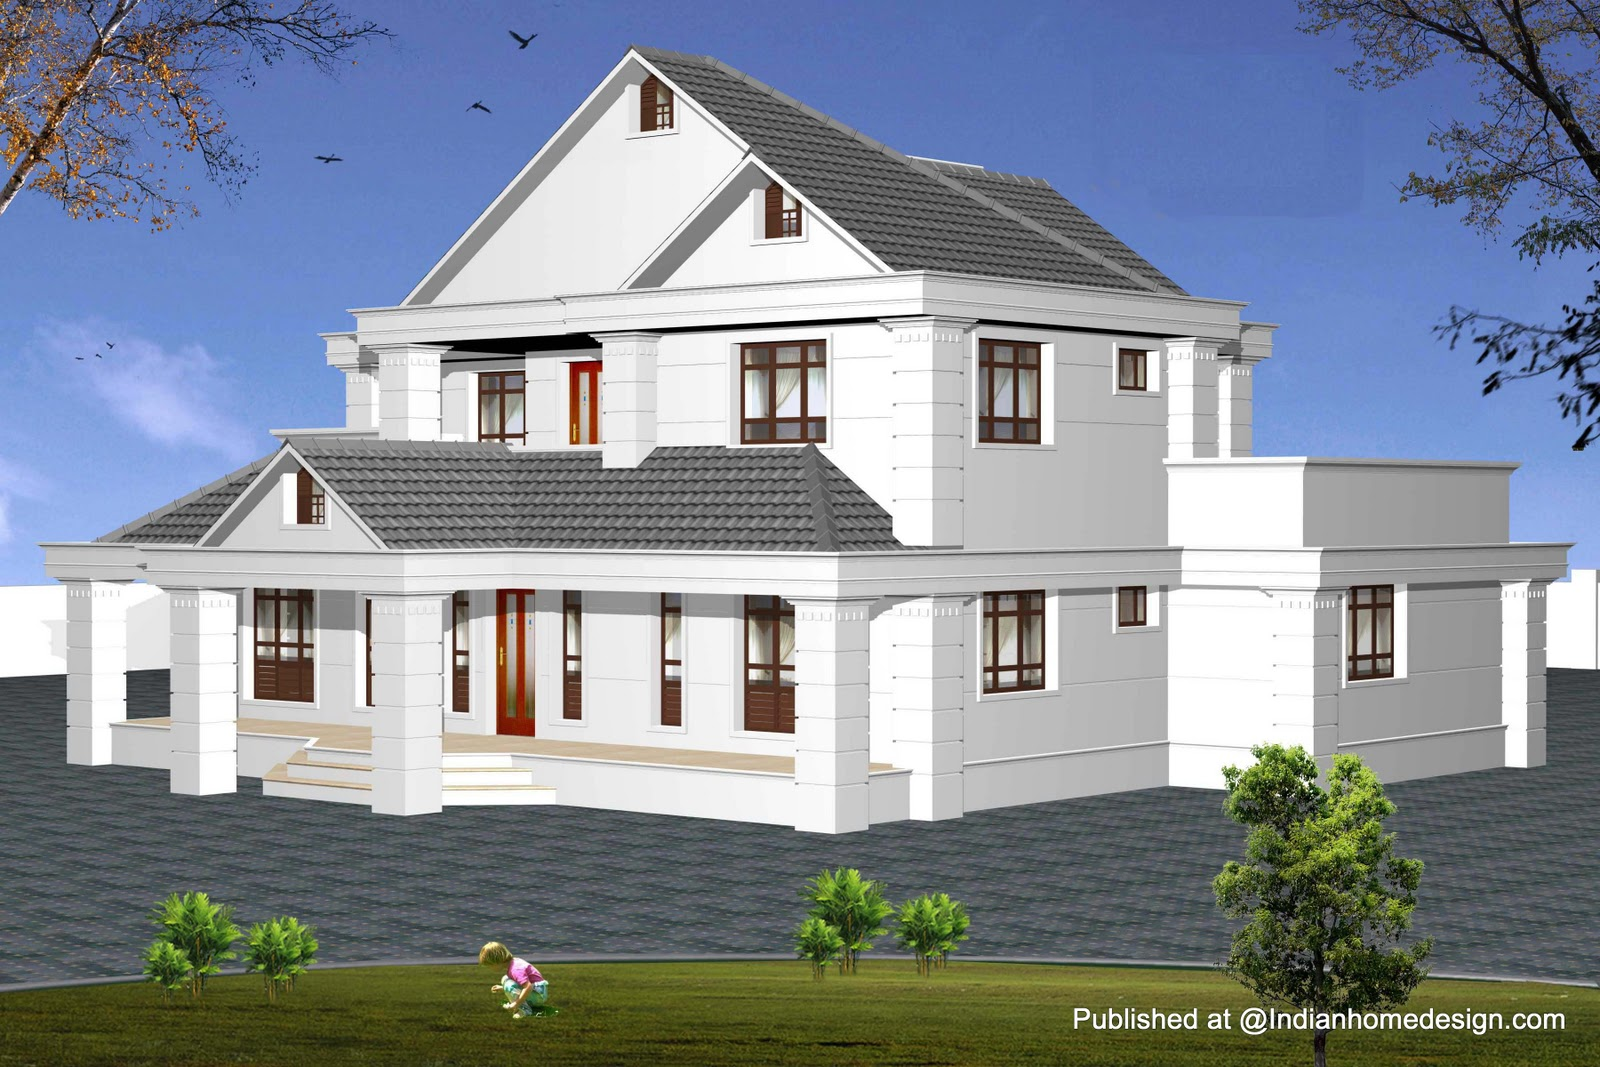 House exterior design india joy studio design gallery for Fachadas de casas de 2 pisos